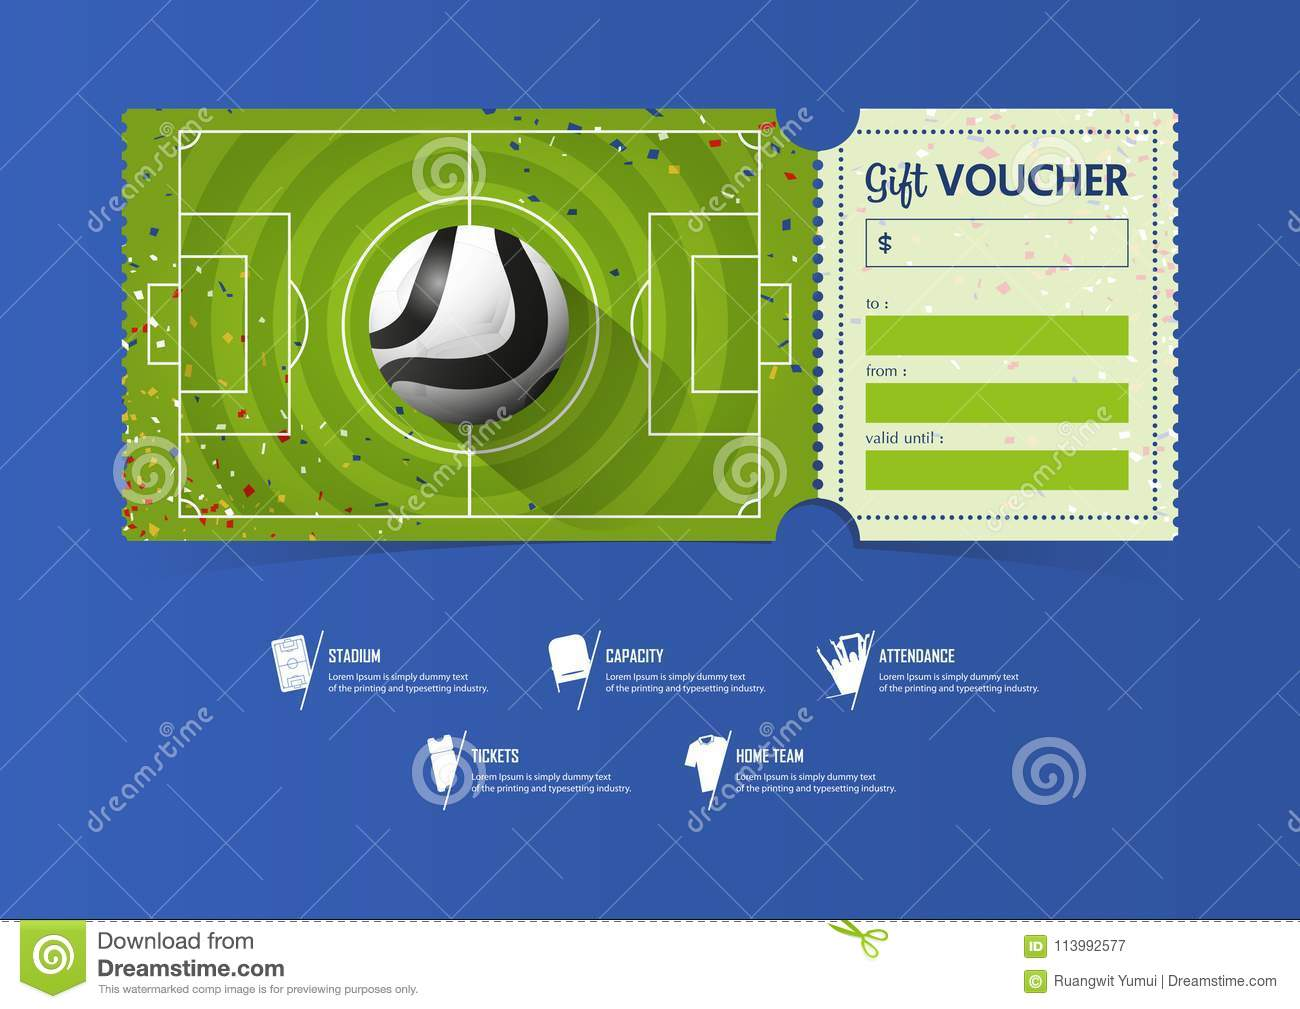 football pitch diagram to print plot graphic organizer pdf or soccer ticket template design for sport match with circle pattern gift vouchers certificate coupons